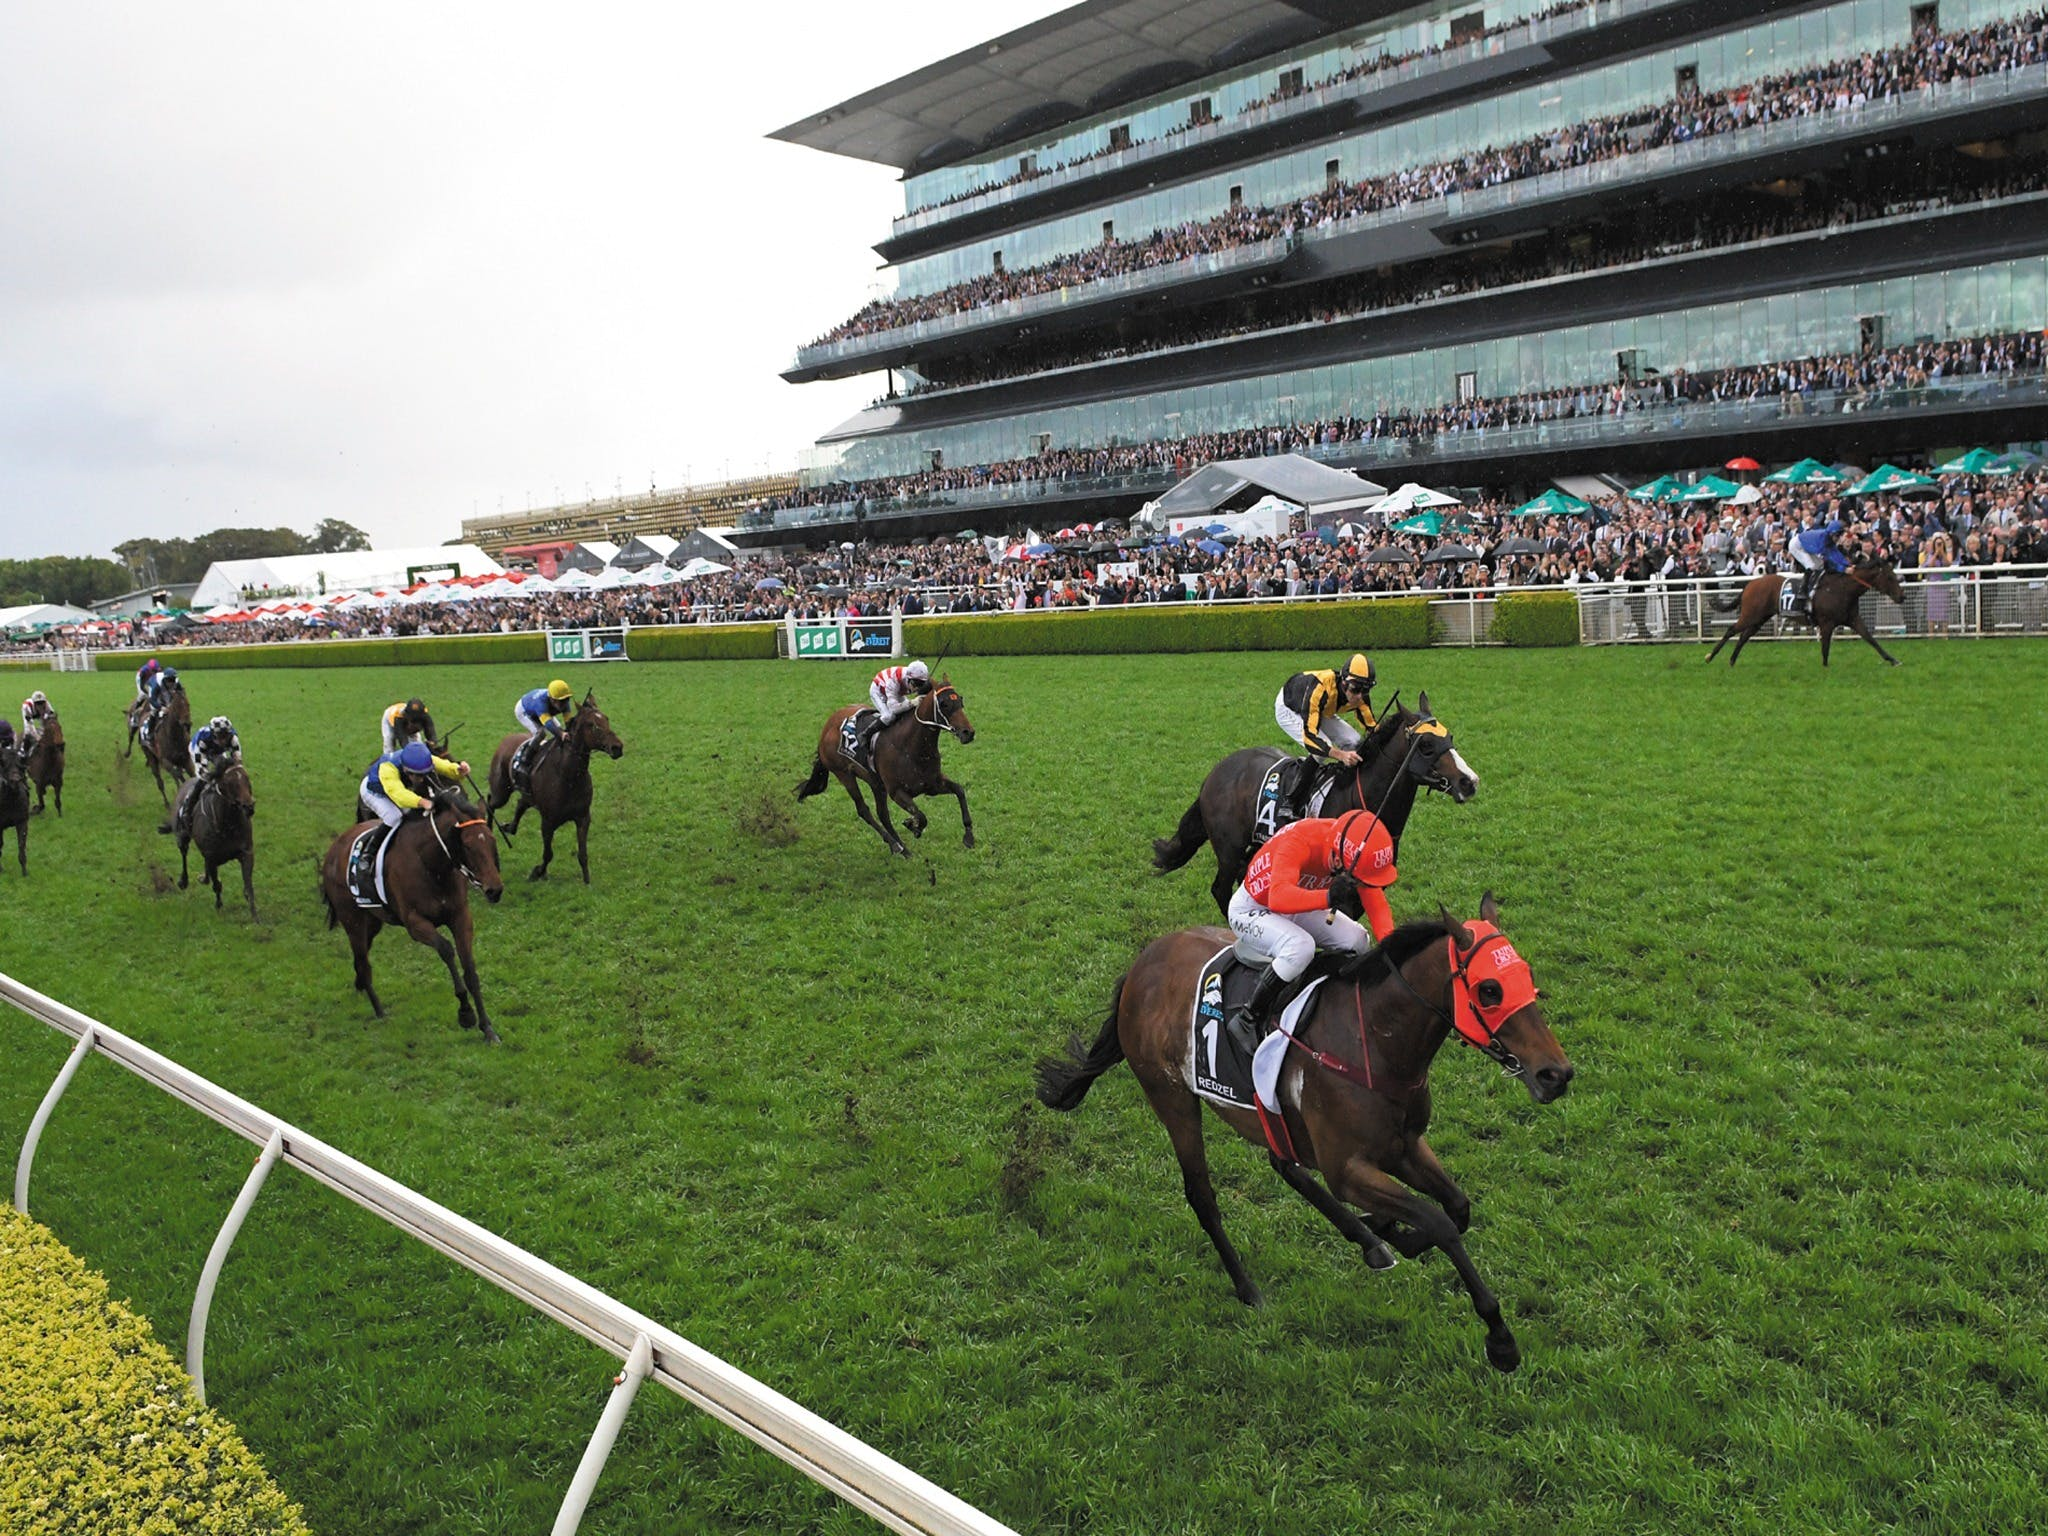 The TAB Everest The Worlds Richest Race On Turf - WA Accommodation